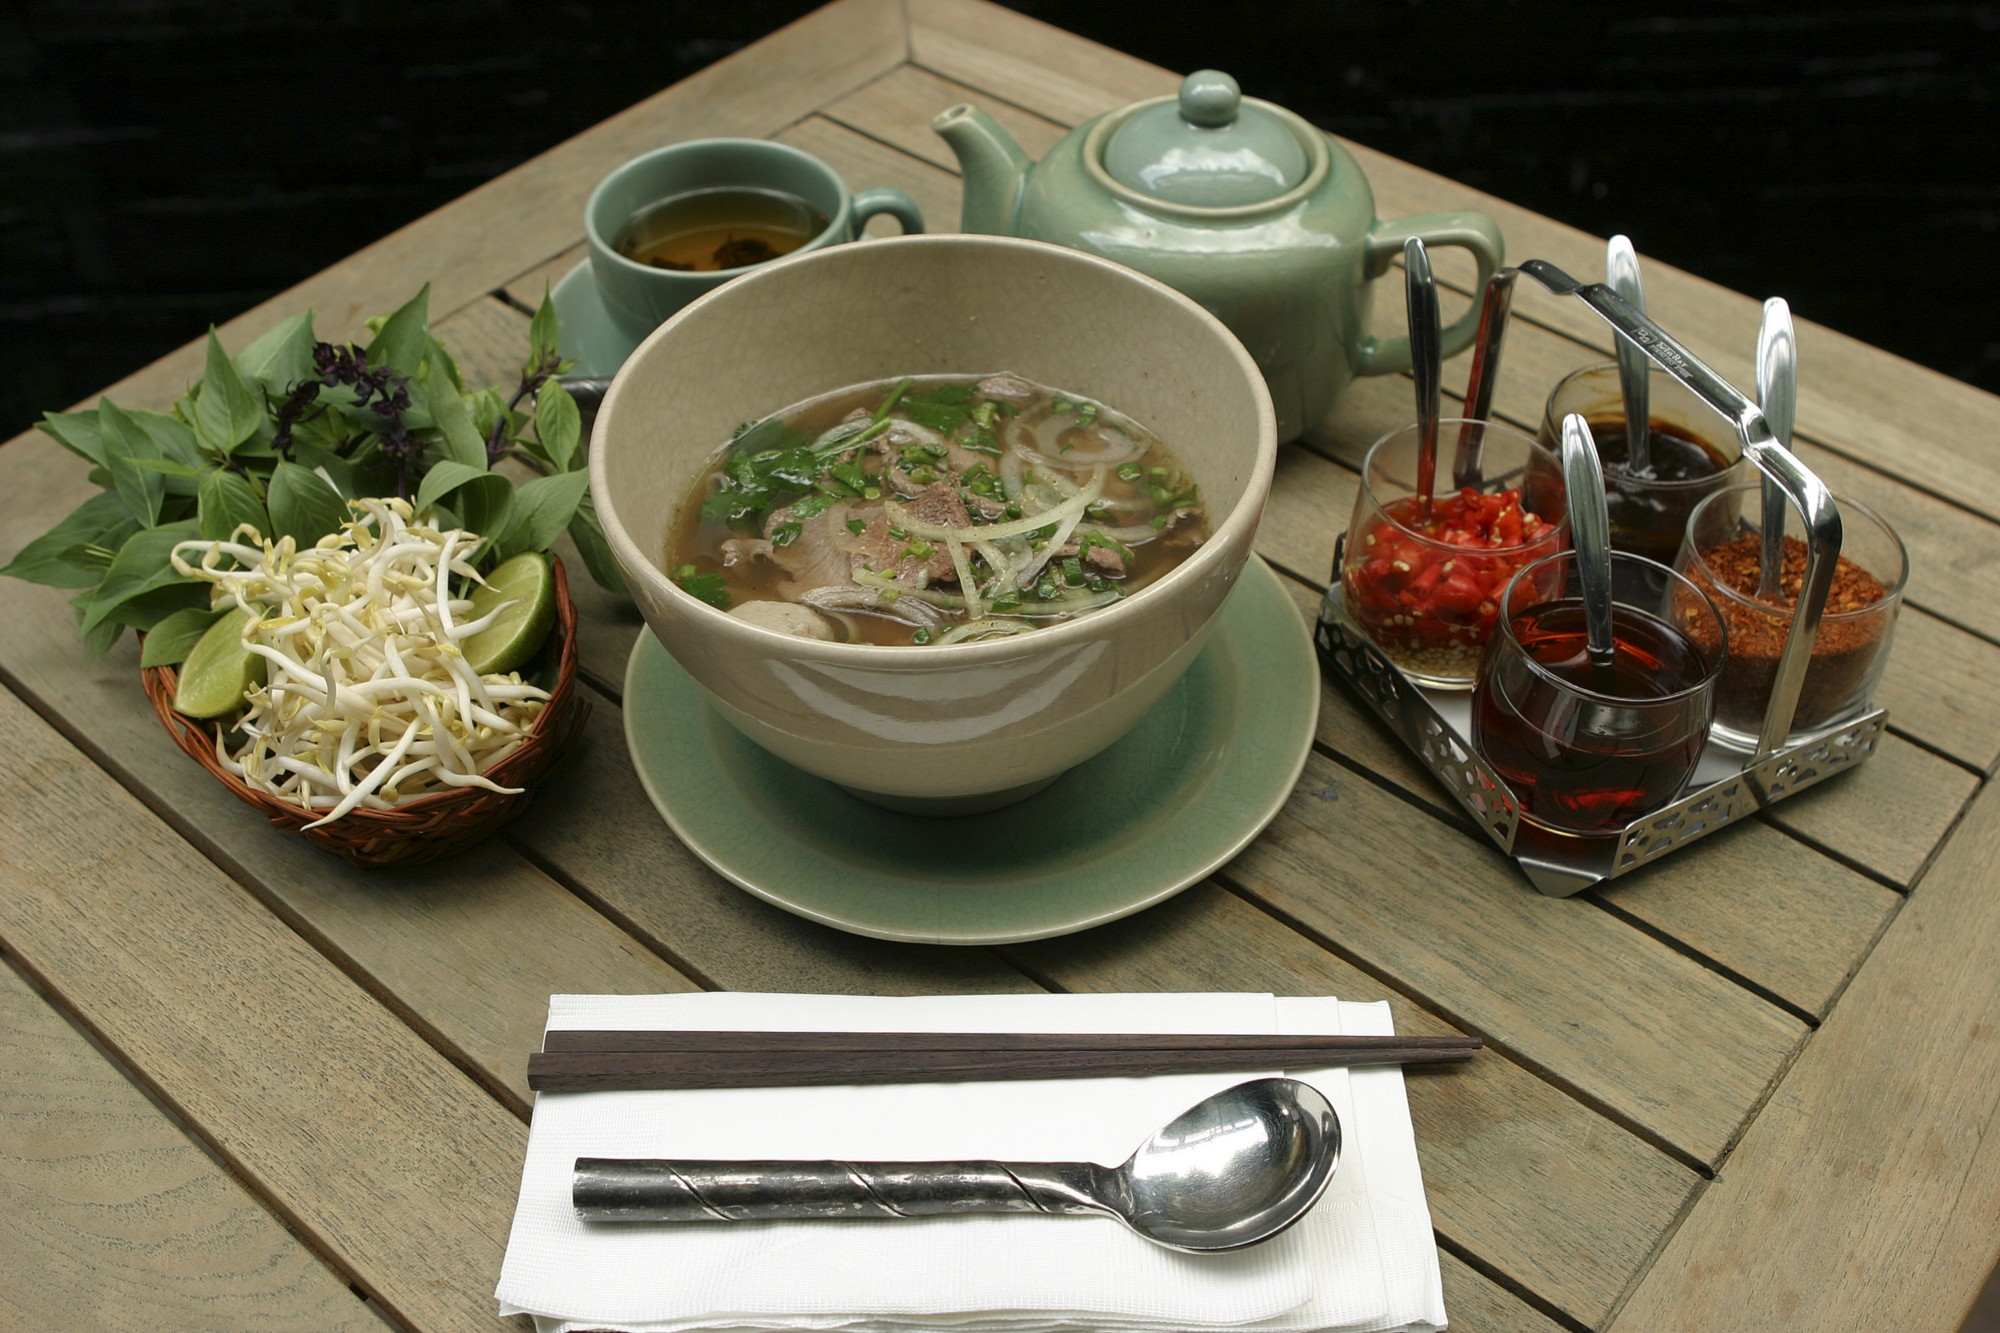 Bowl of pho surrounded by beansprouts and sauces